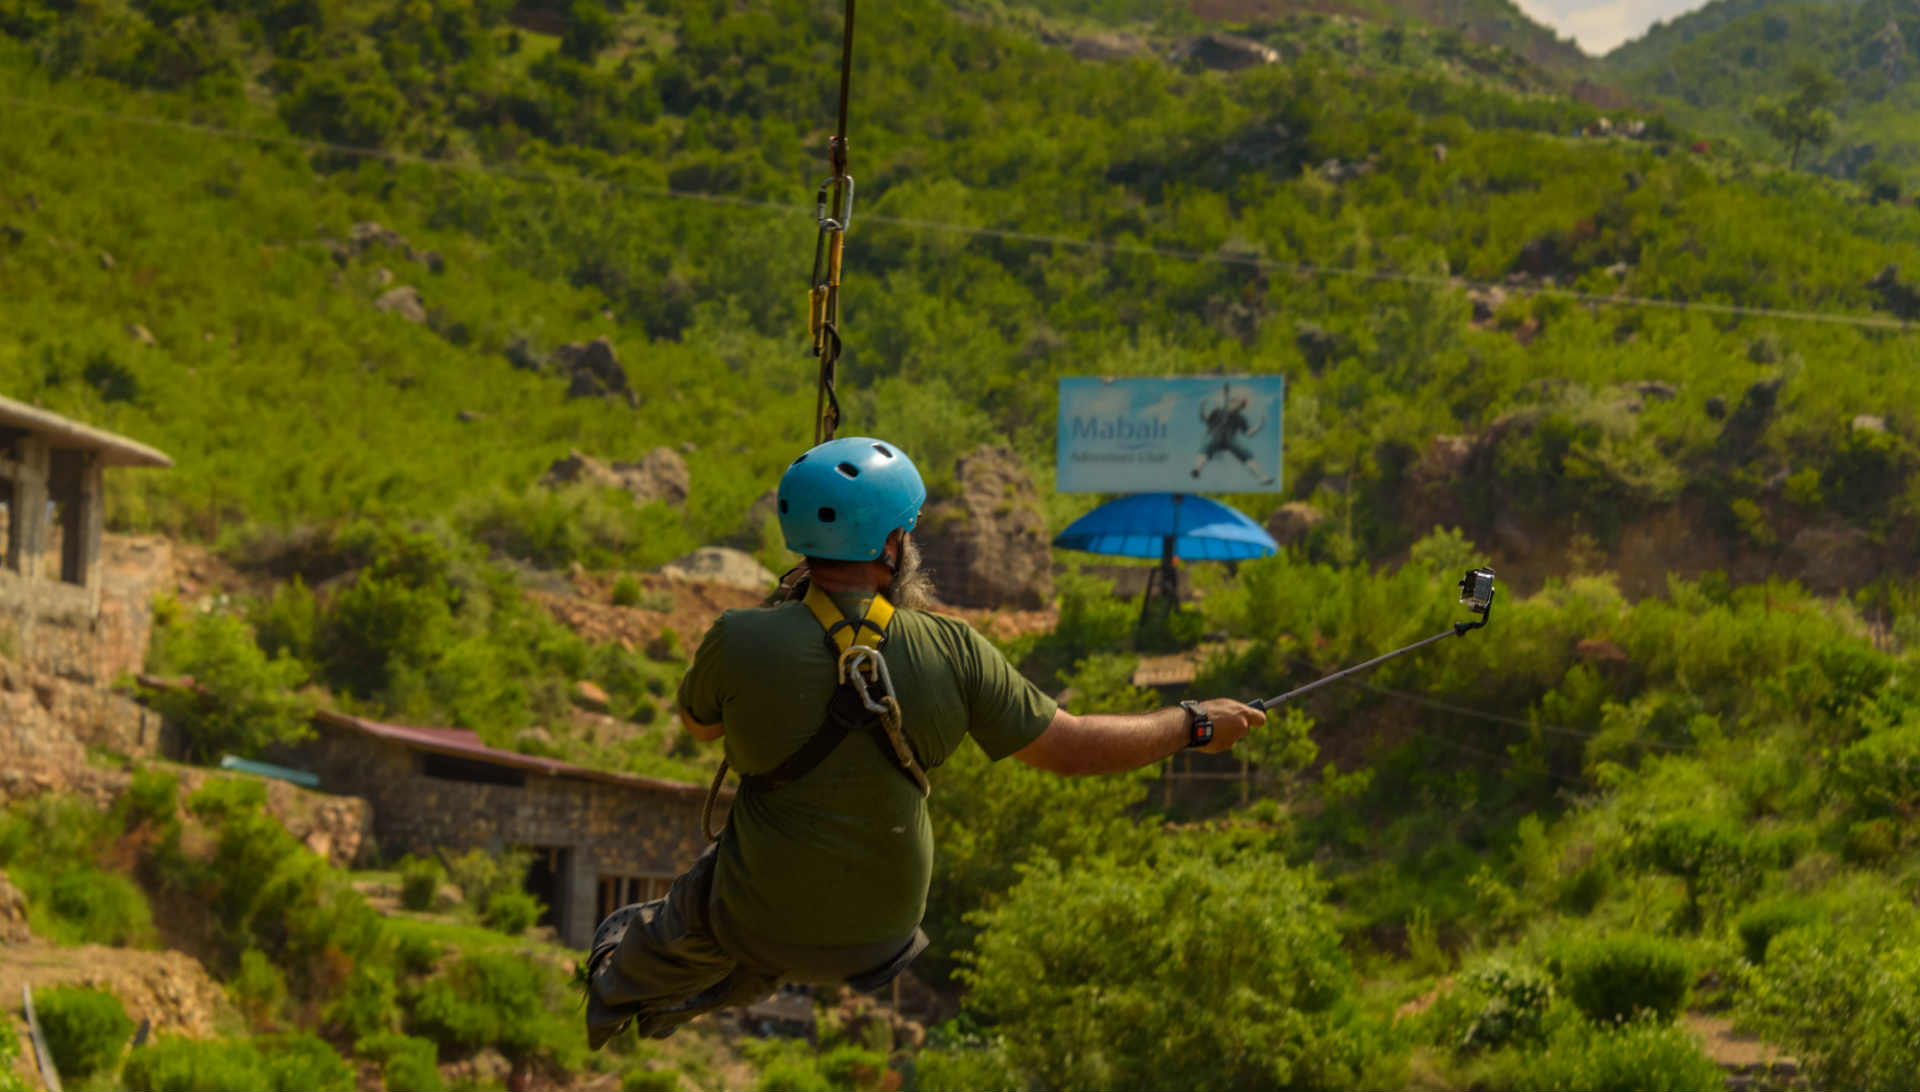 Are You Ready For The Zipline Experience?